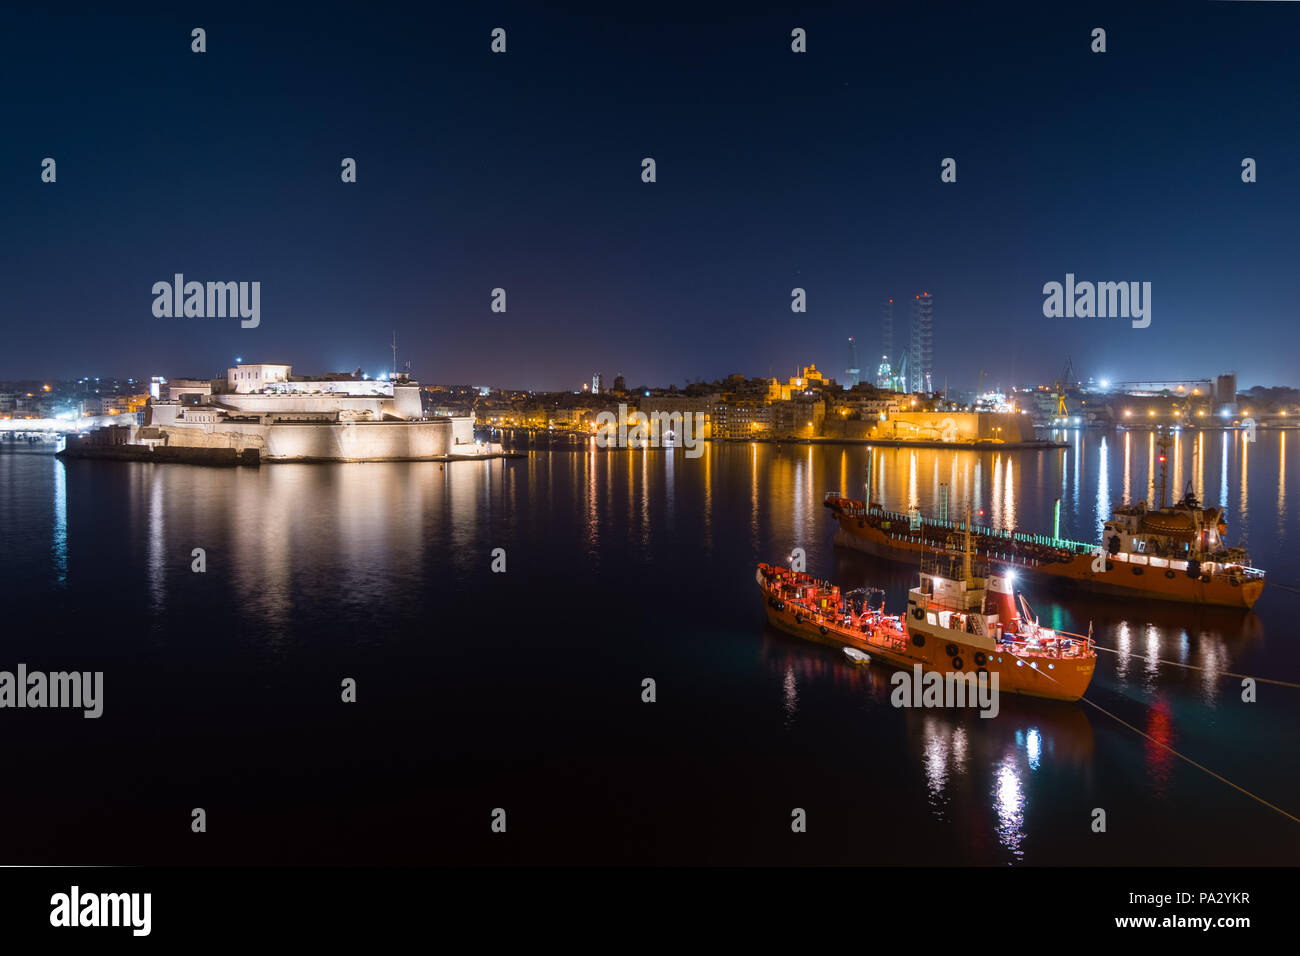 Valletta port at night with anchored ships and Vauban fort, in Malta. - Stock Image